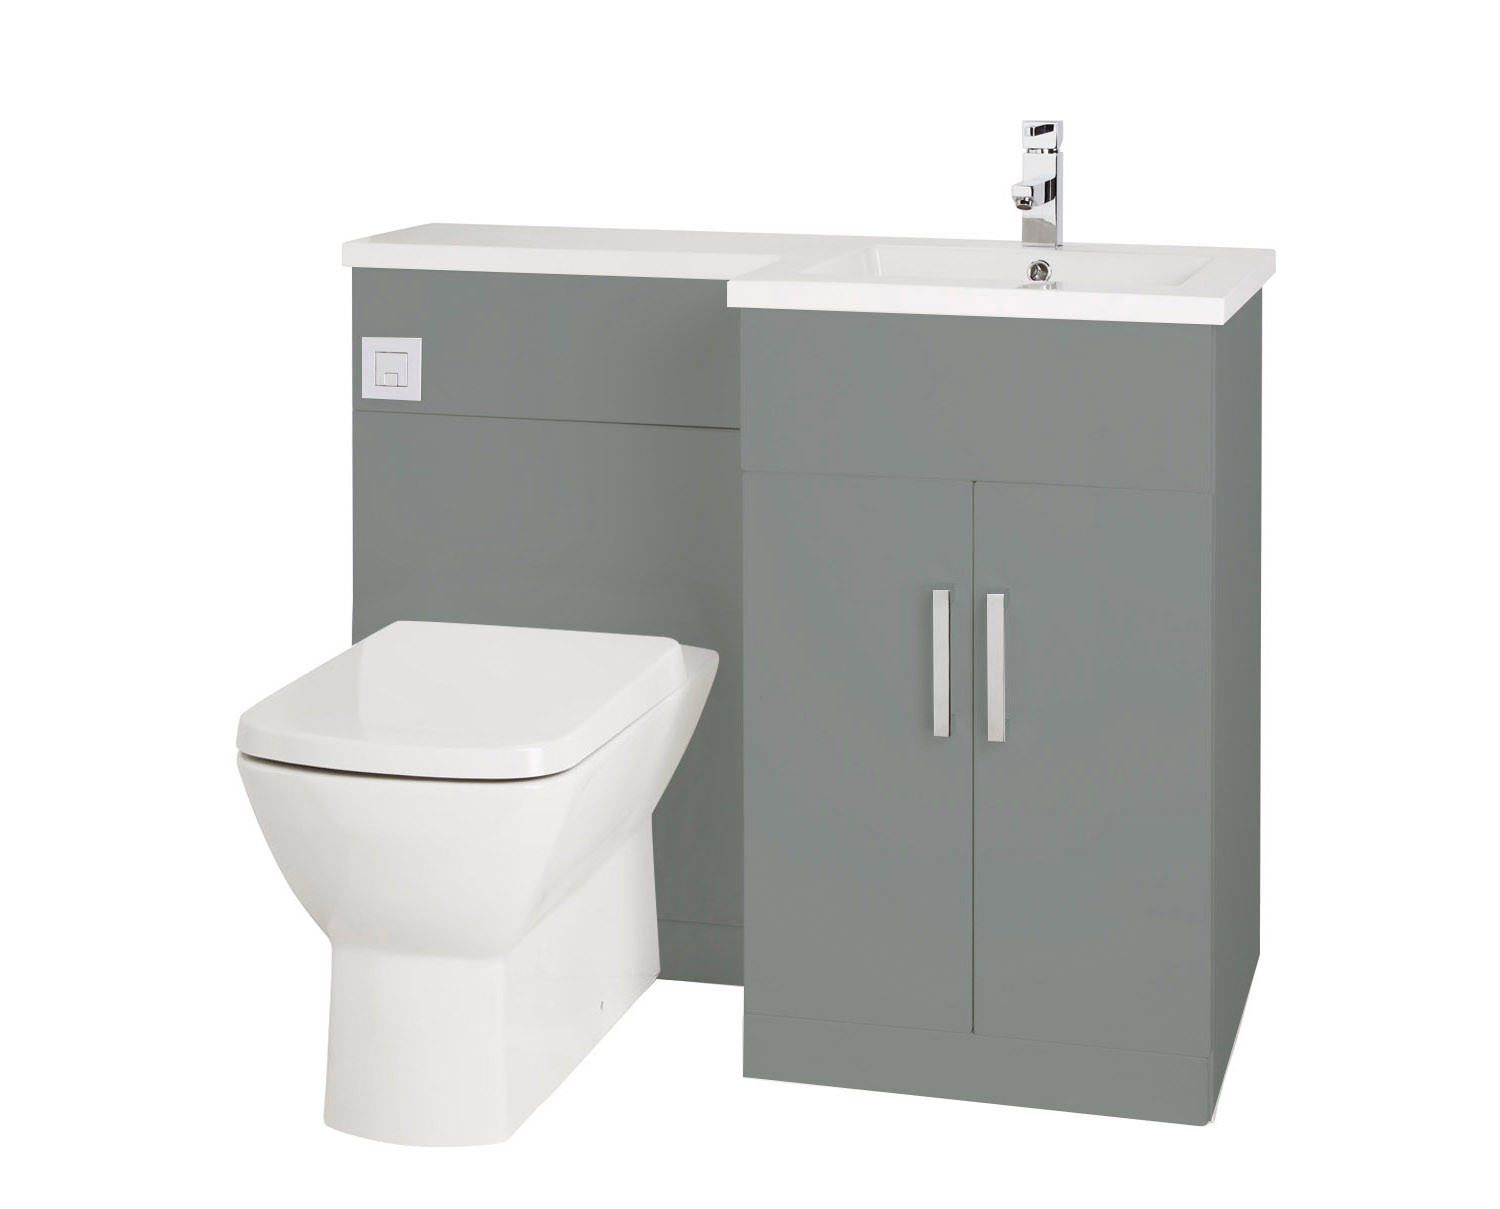 Pleasing Aquatrend Petite Right Hand Back To Wall Basin And Toilet Pdpeps Interior Chair Design Pdpepsorg